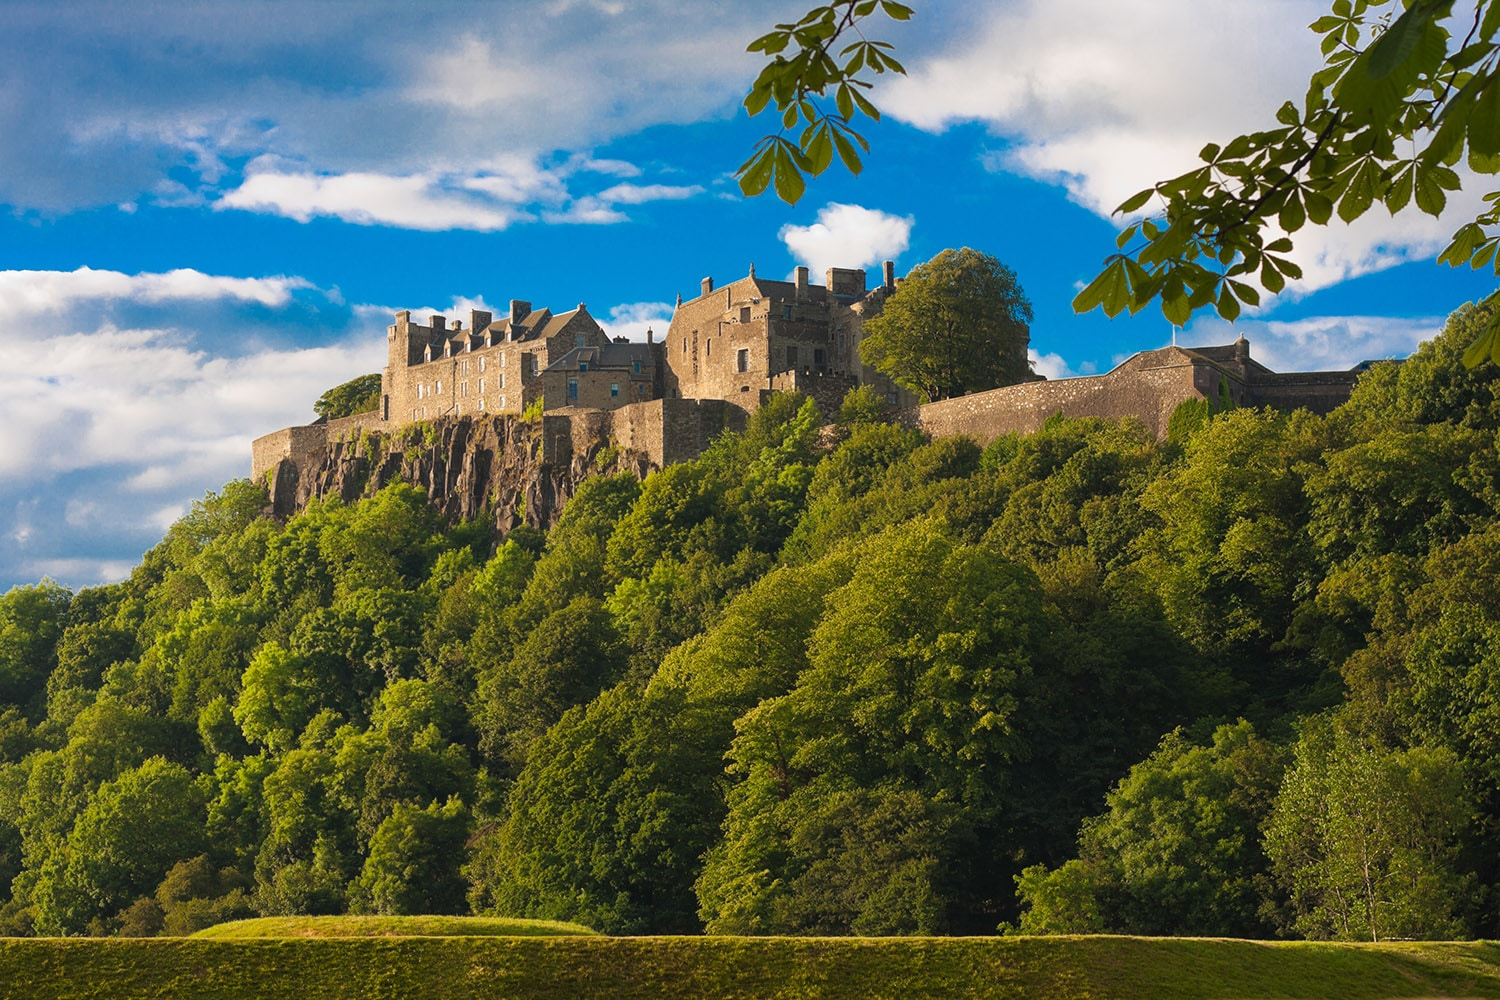 A lovely photograph of Stirling Castle which can be visited on a bespoke tour of Scotland